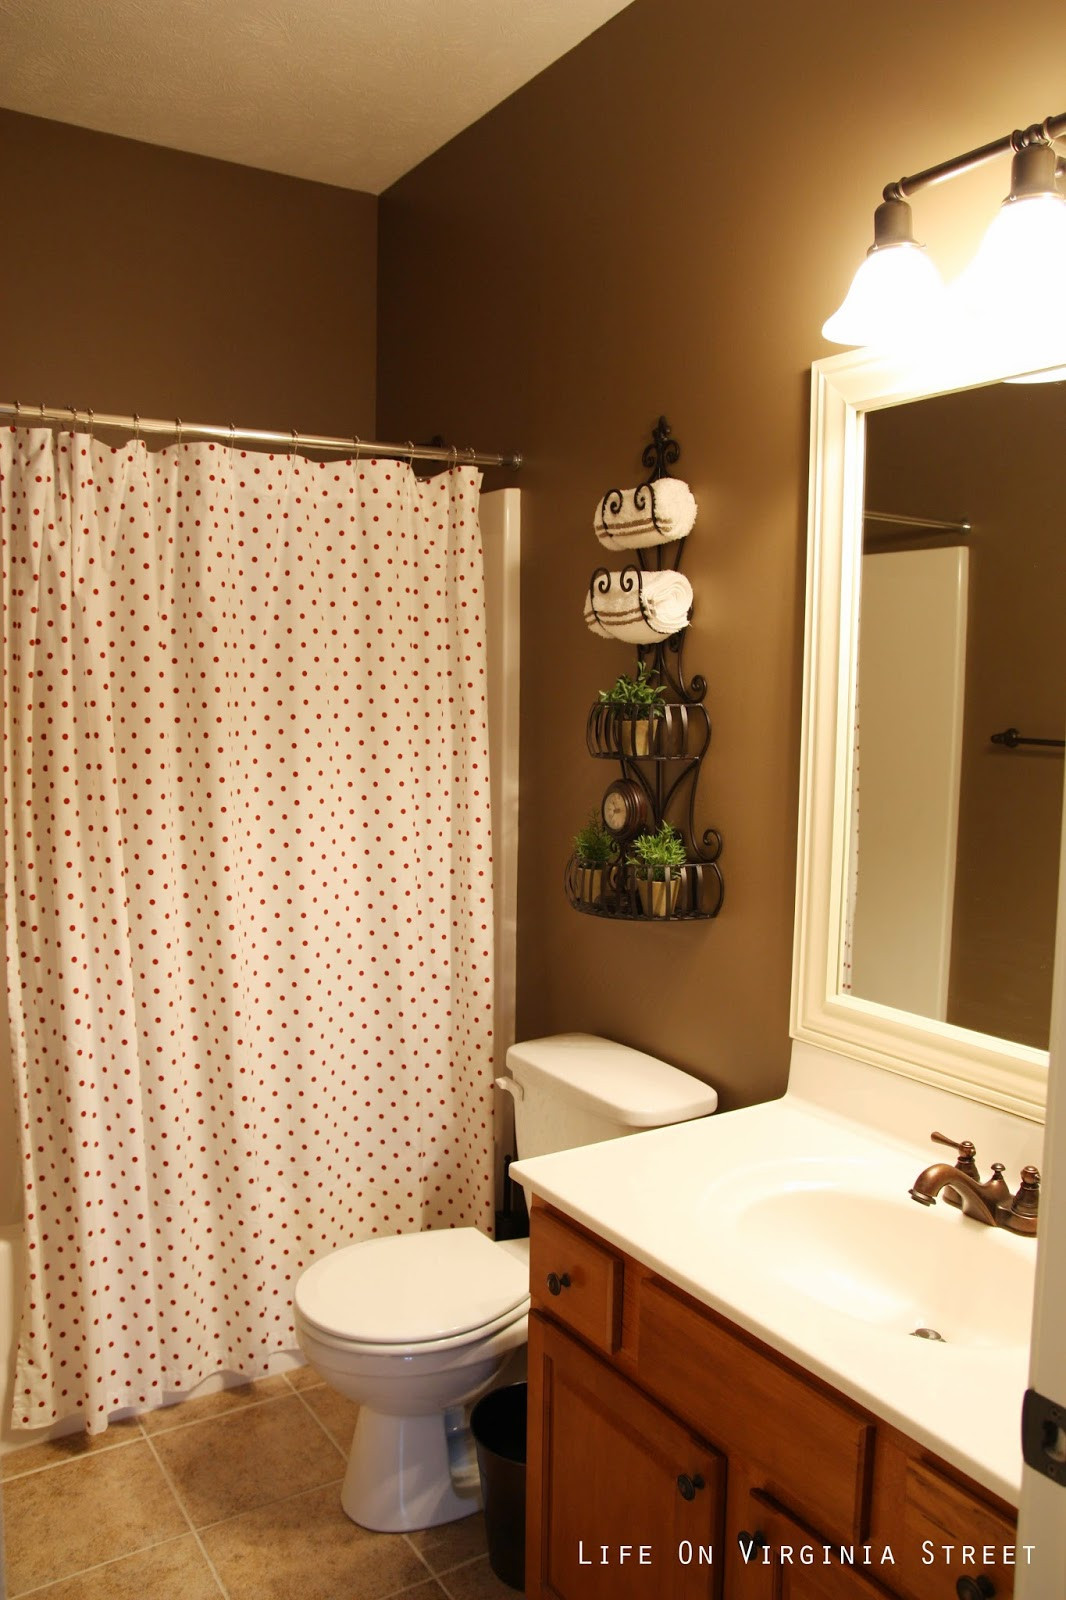 Best ideas about Tan Paint Colors . Save or Pin Library of Paint Colors Life Virginia Street Now.